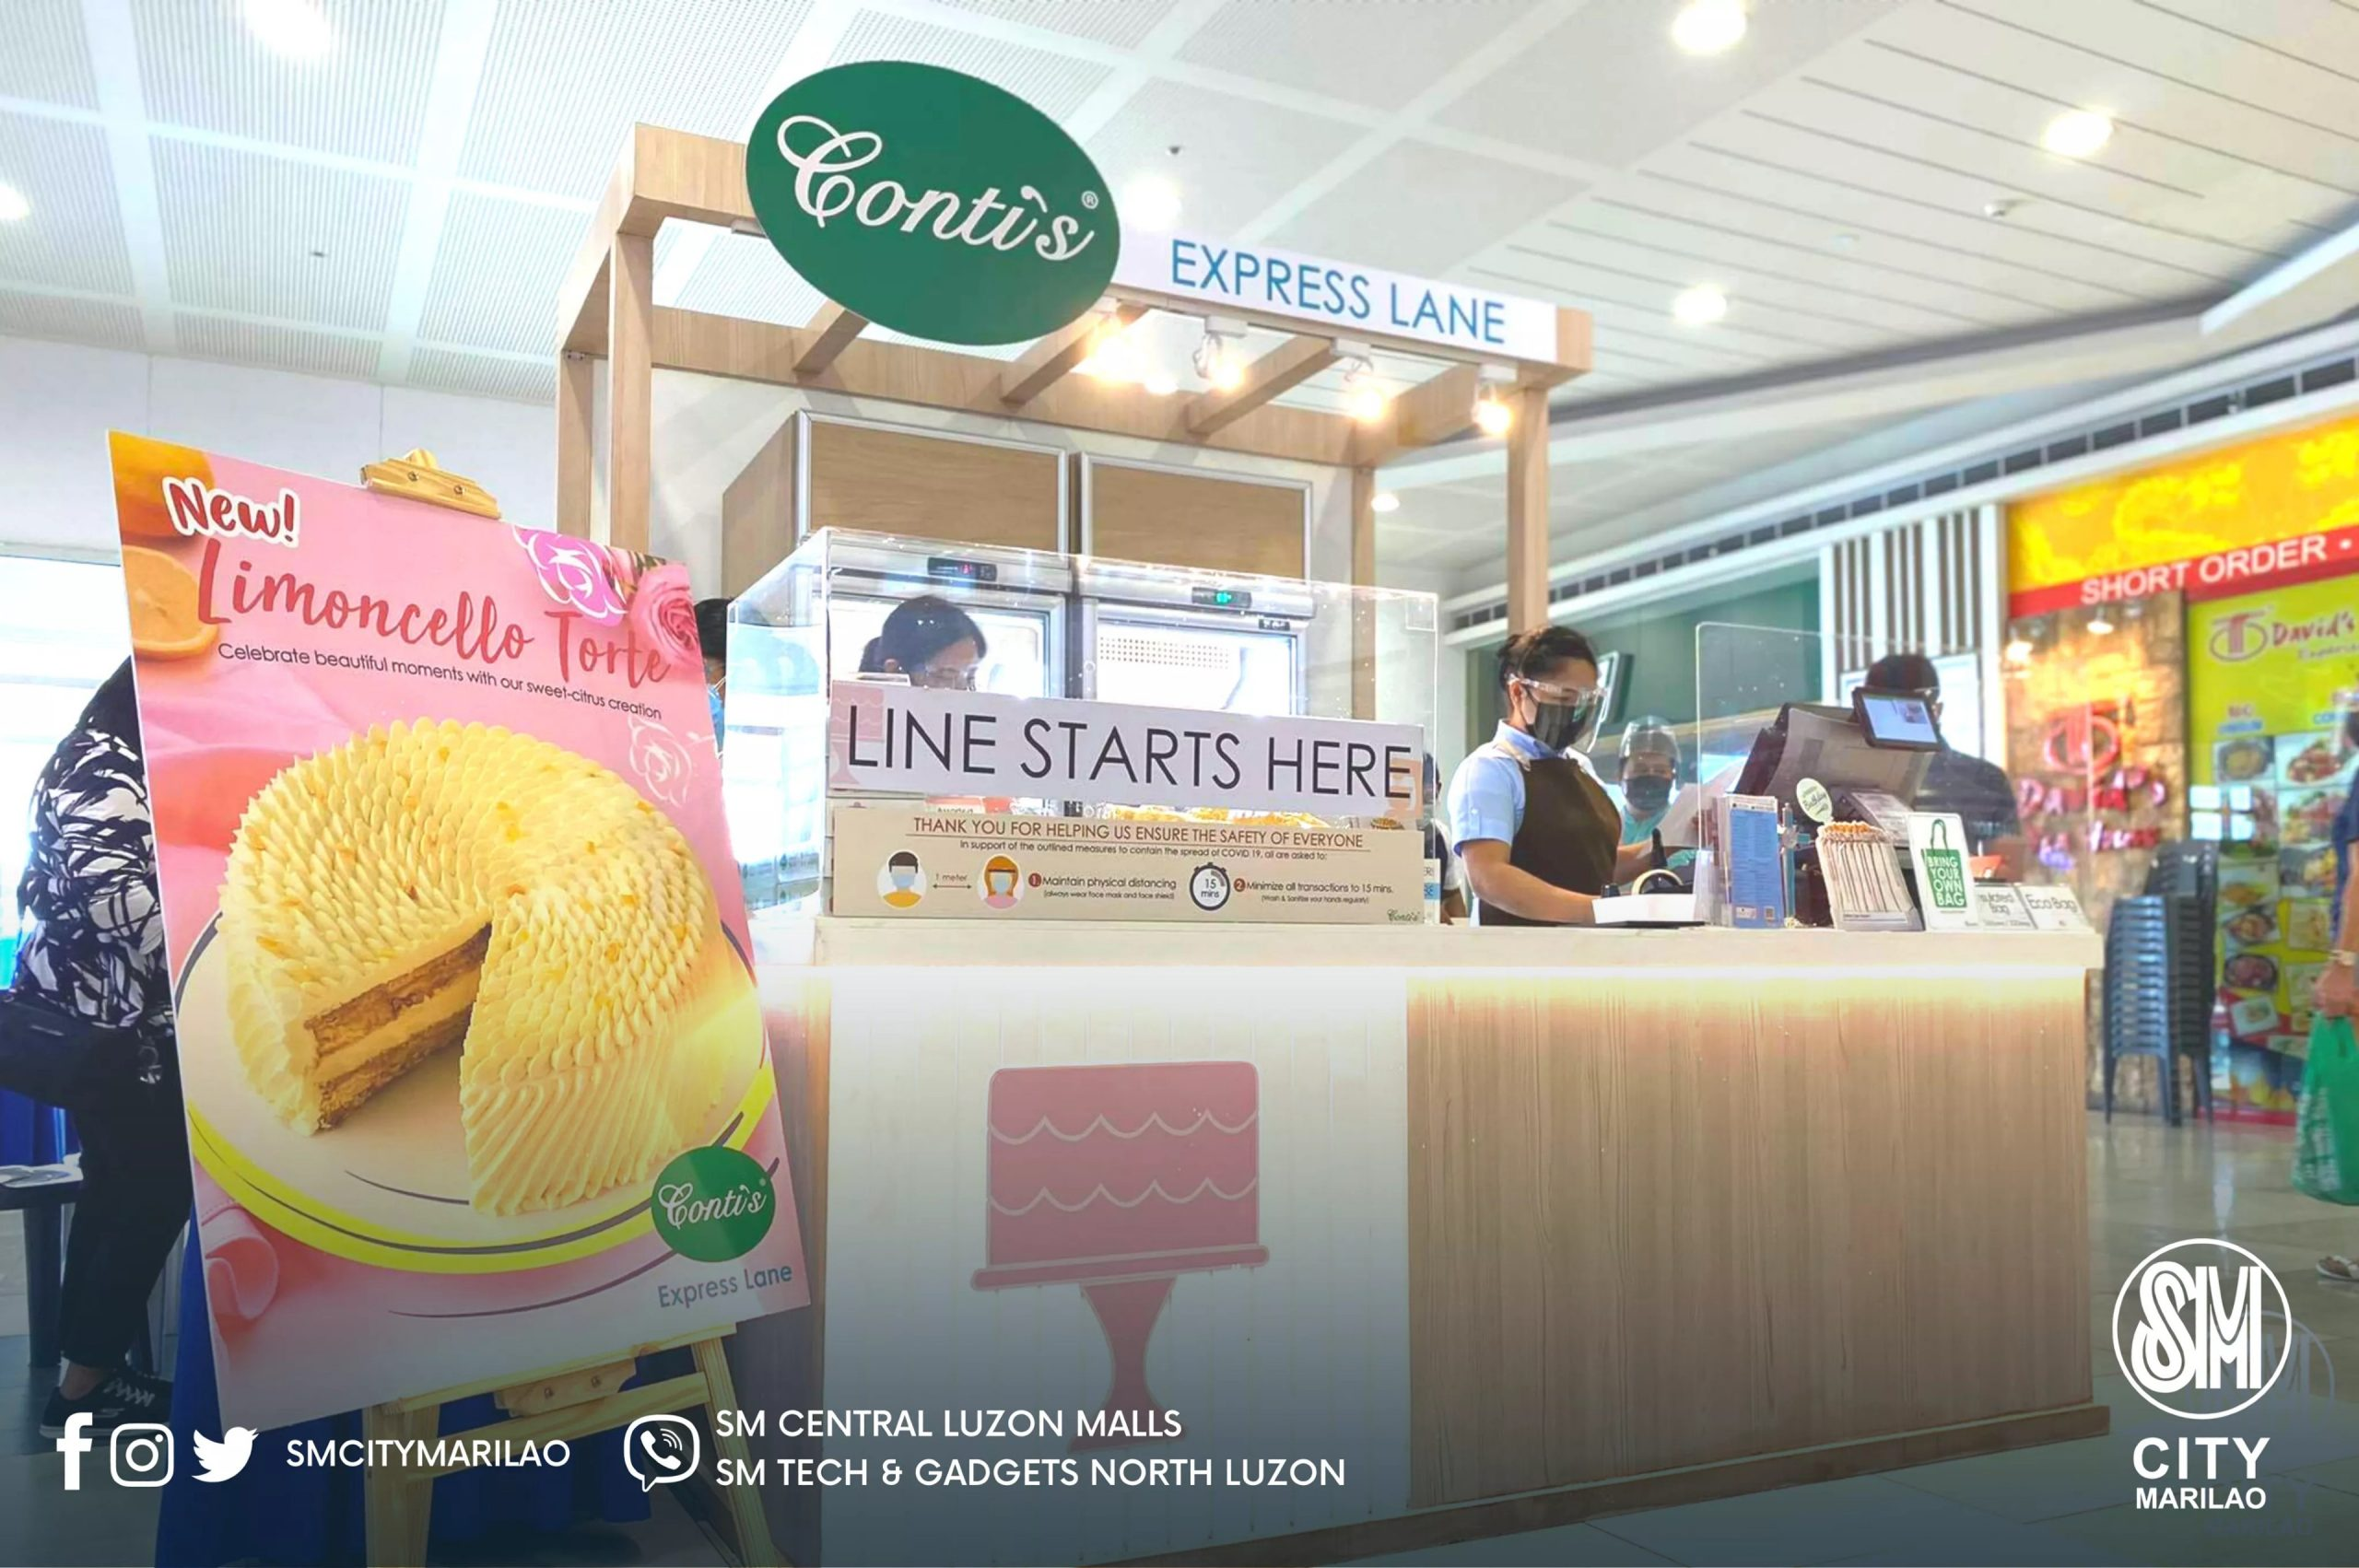 SM City Marilao and SM City Baliwag open new confectionery brand